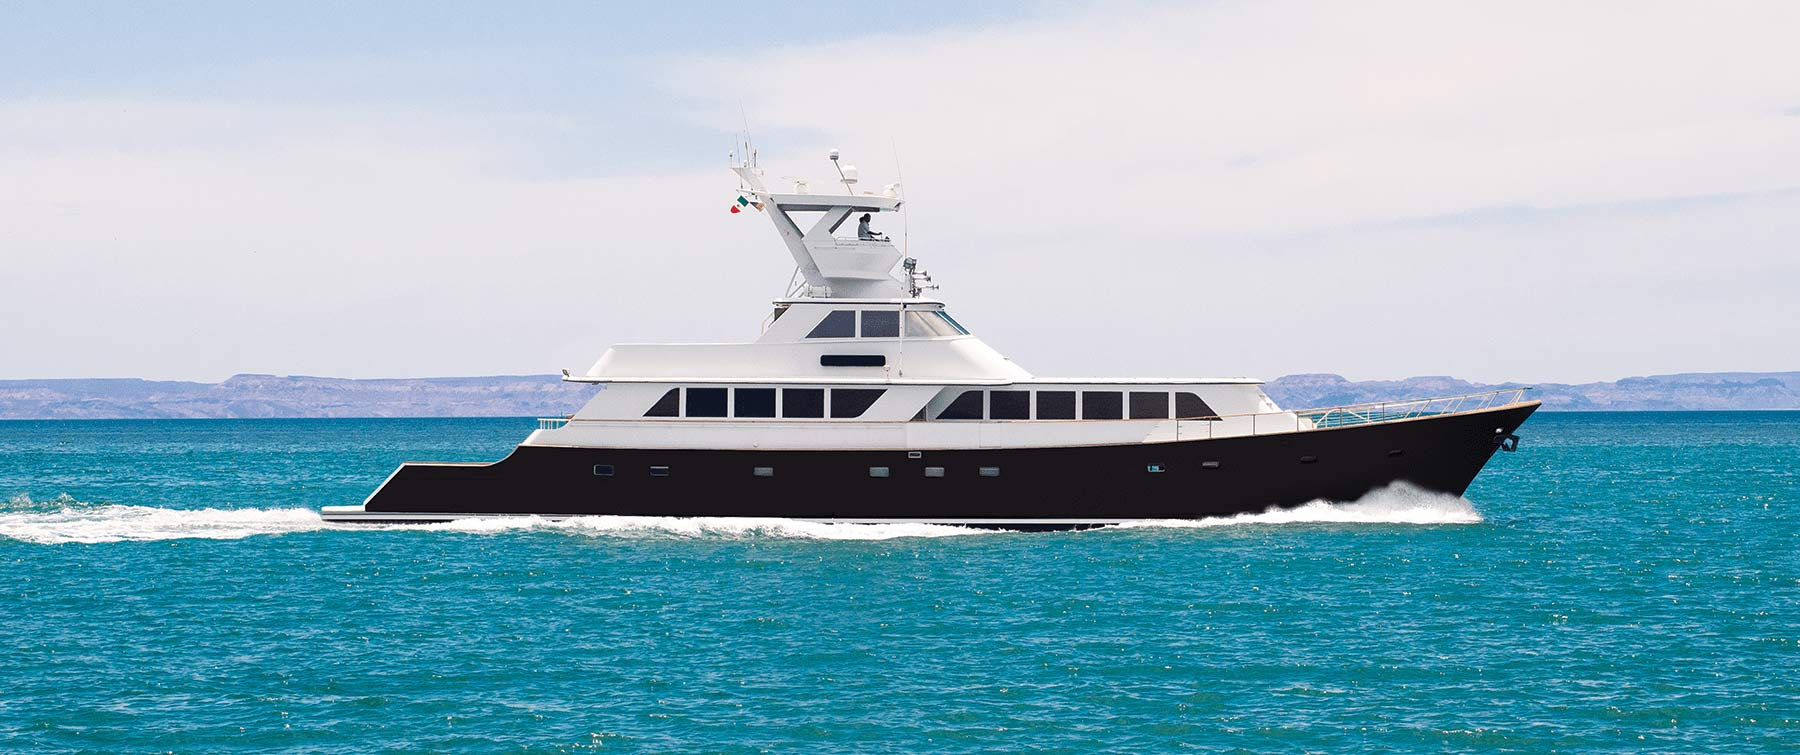 Gallant Lady at Sea Of Cortez